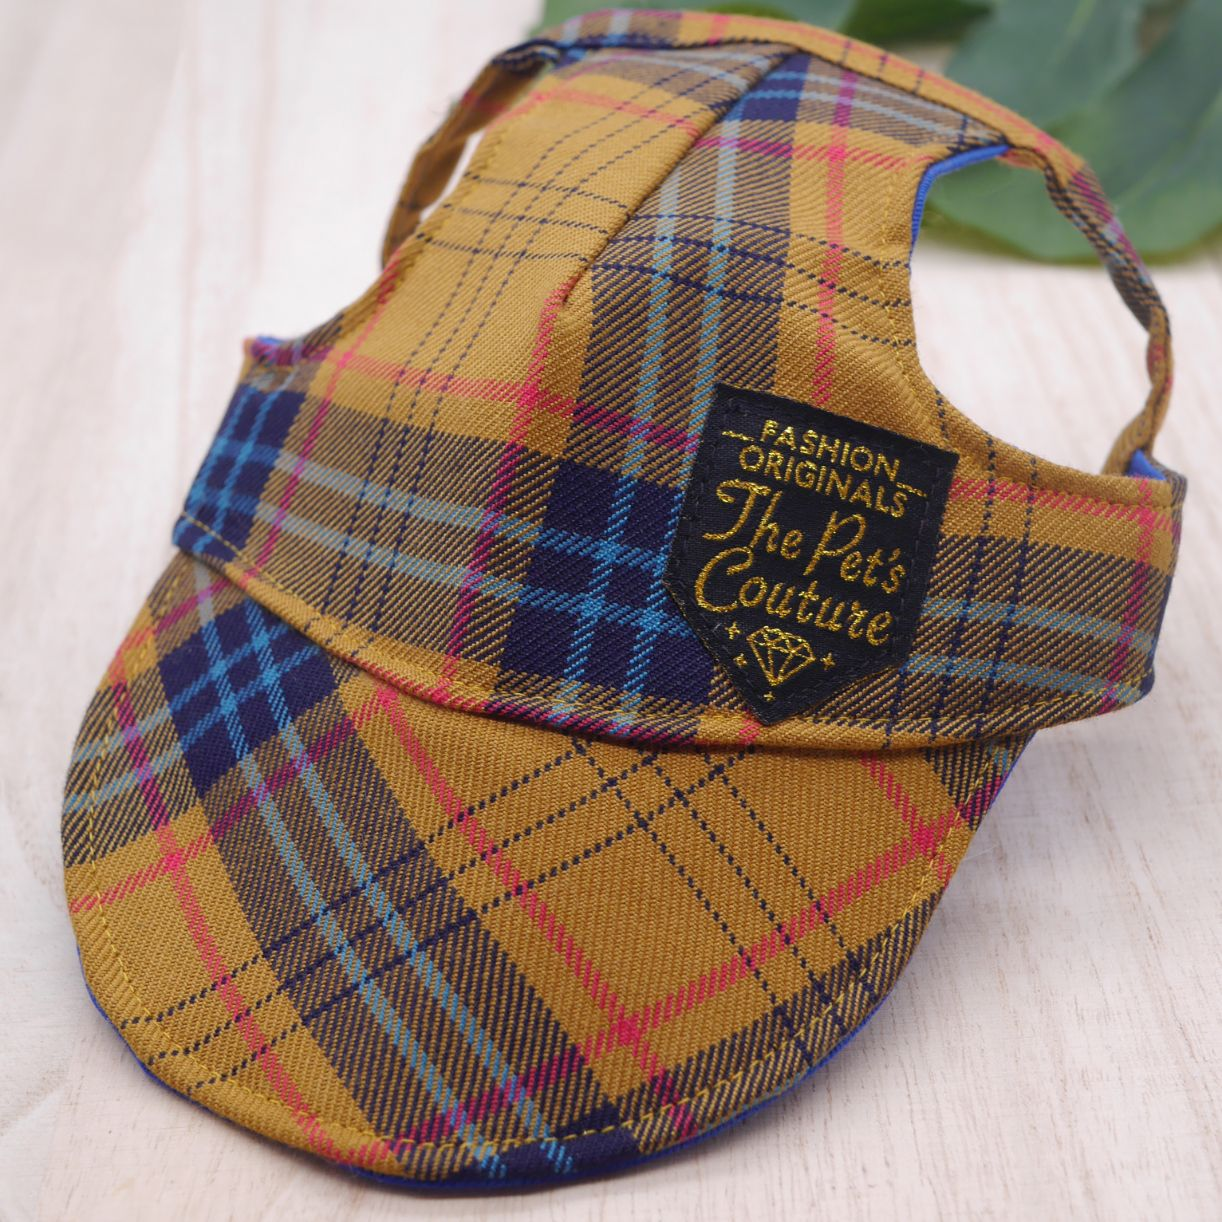 Walking Caps For Him - Mustard Tartan - The Pet's Couture